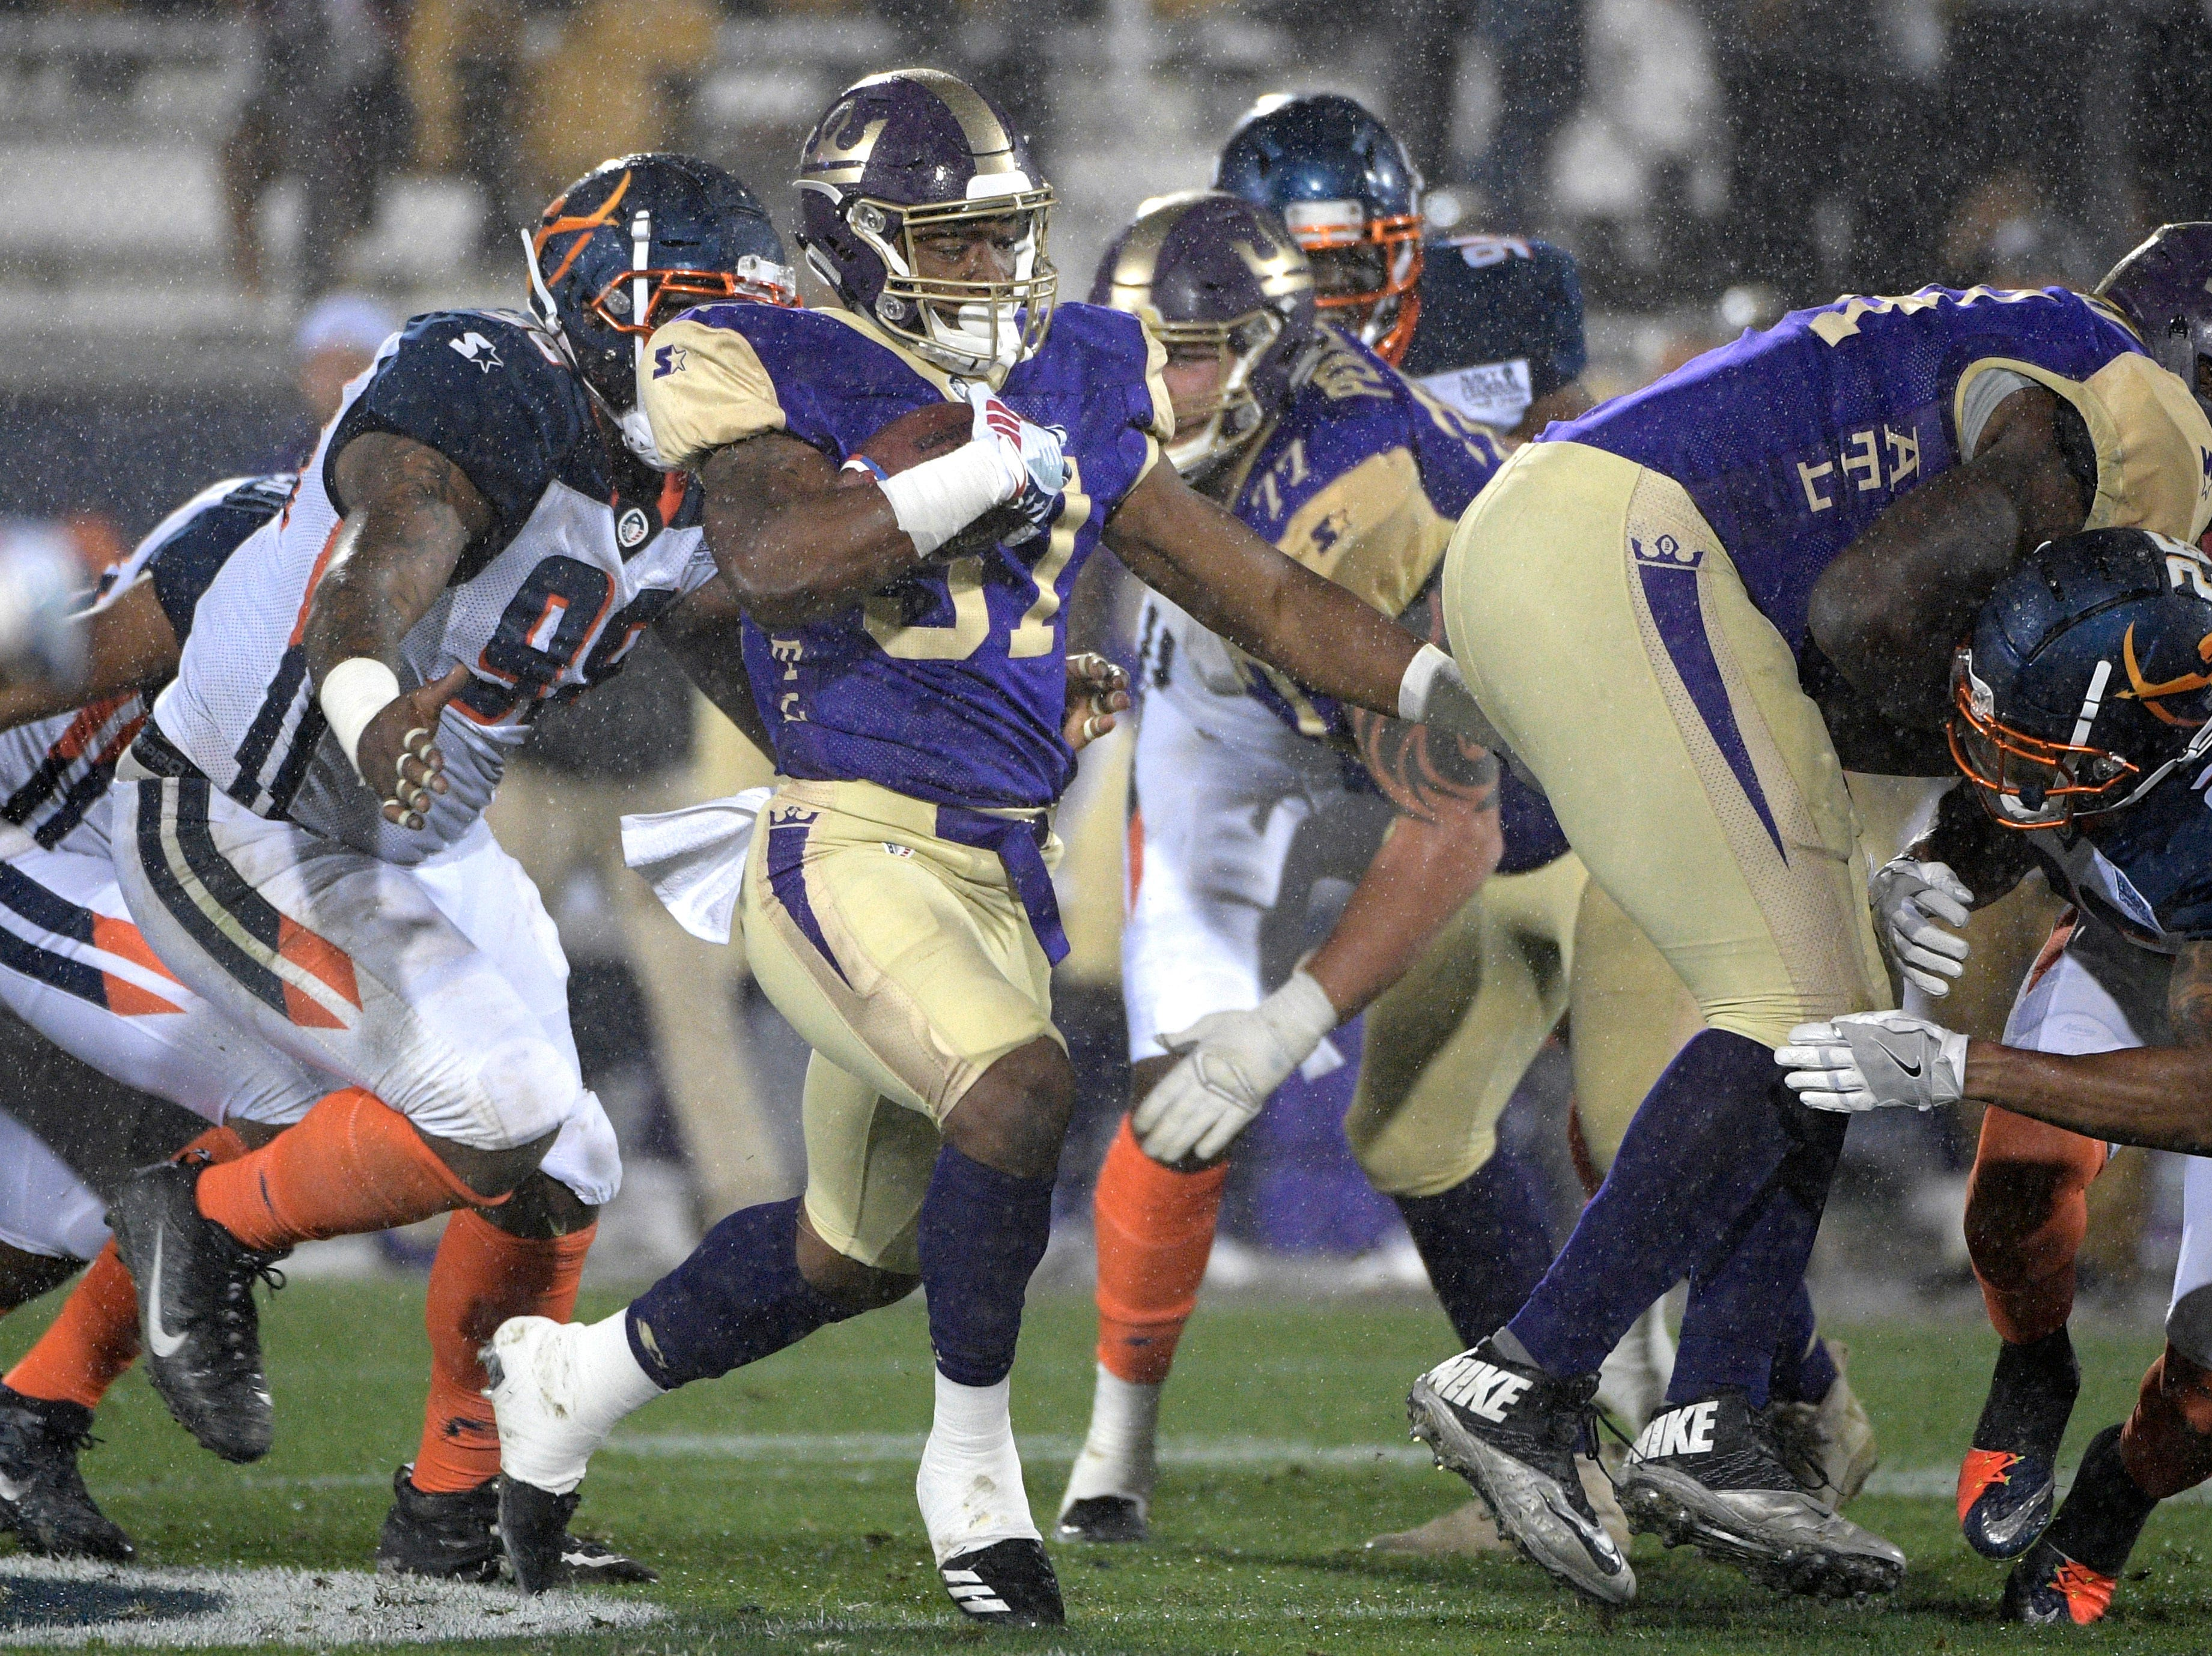 Atlanta Legends running back Lawrence Pittman rushes in front of Orlando Apollos defensive end Anthony Moten Jr. (98) during the second half of an Alliance of American Football game Saturday, Feb. 9, 2019, in Orlando, Fla. (AP Photo/Phelan M. Ebenhack)